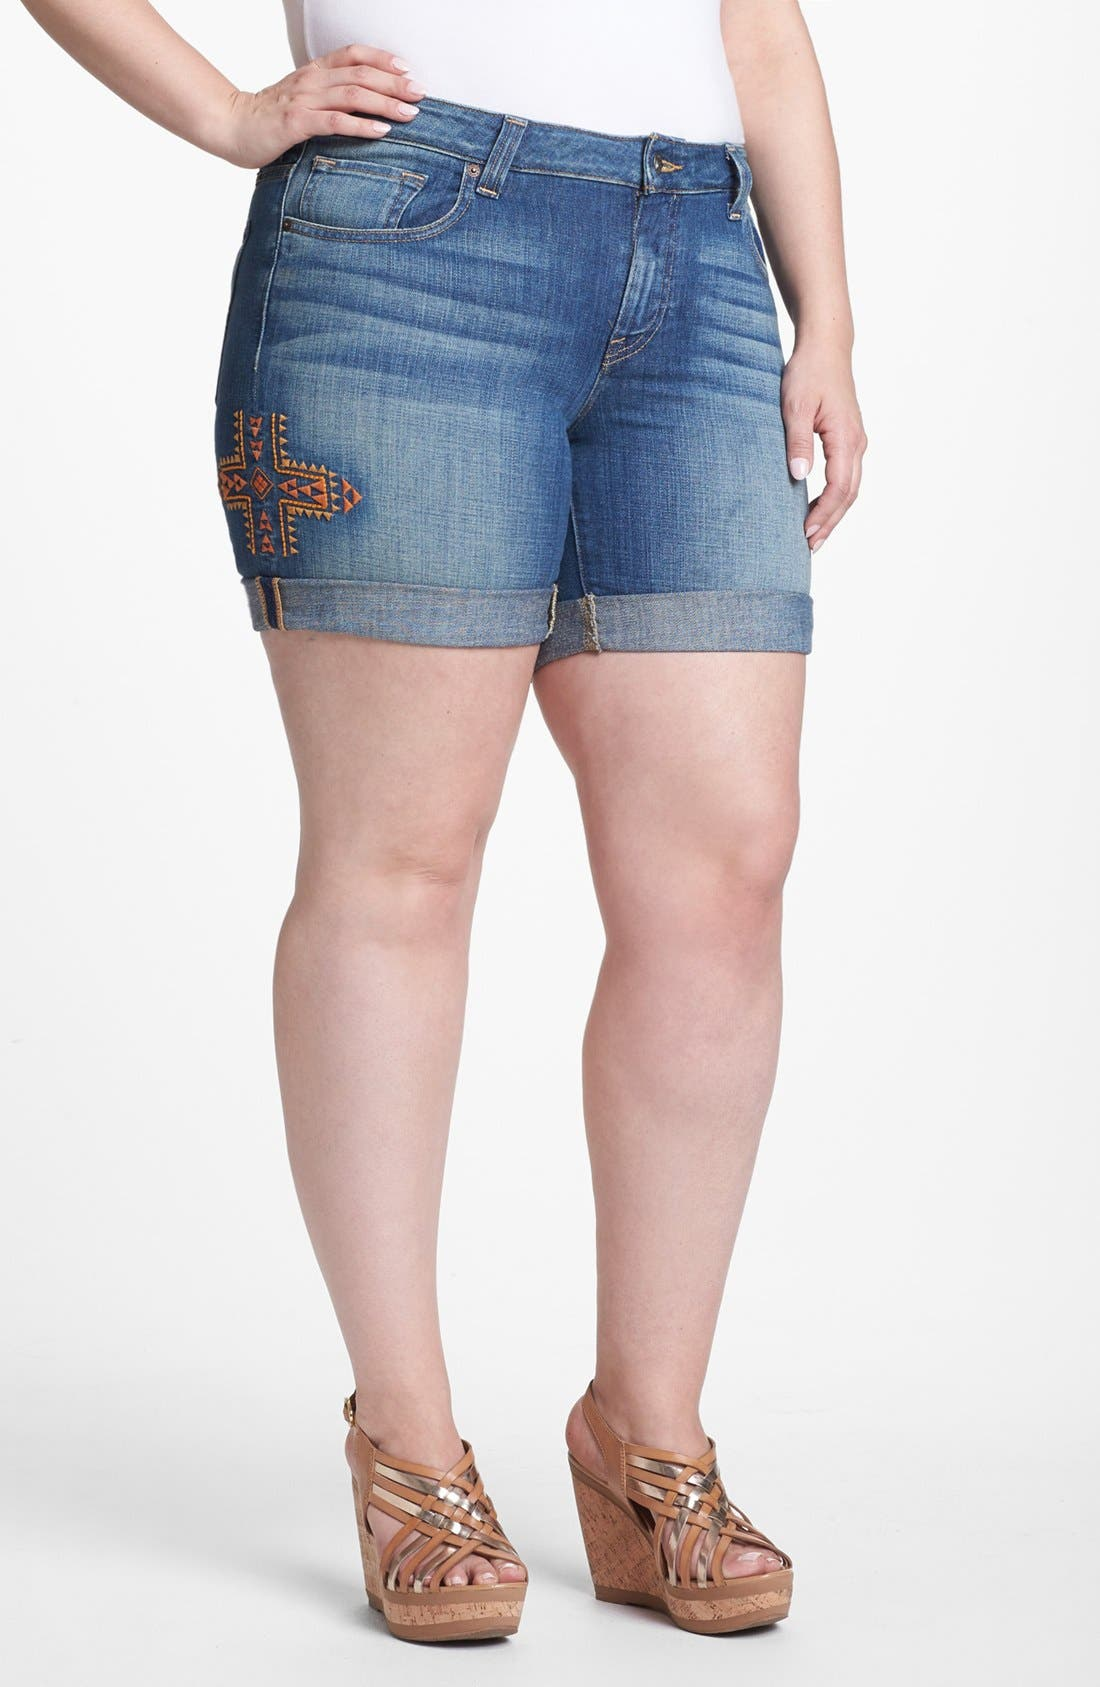 Alternate Image 1 Selected - Lucky Brand 'Ginger' Embroidered Jean Shorts (Plus Size)